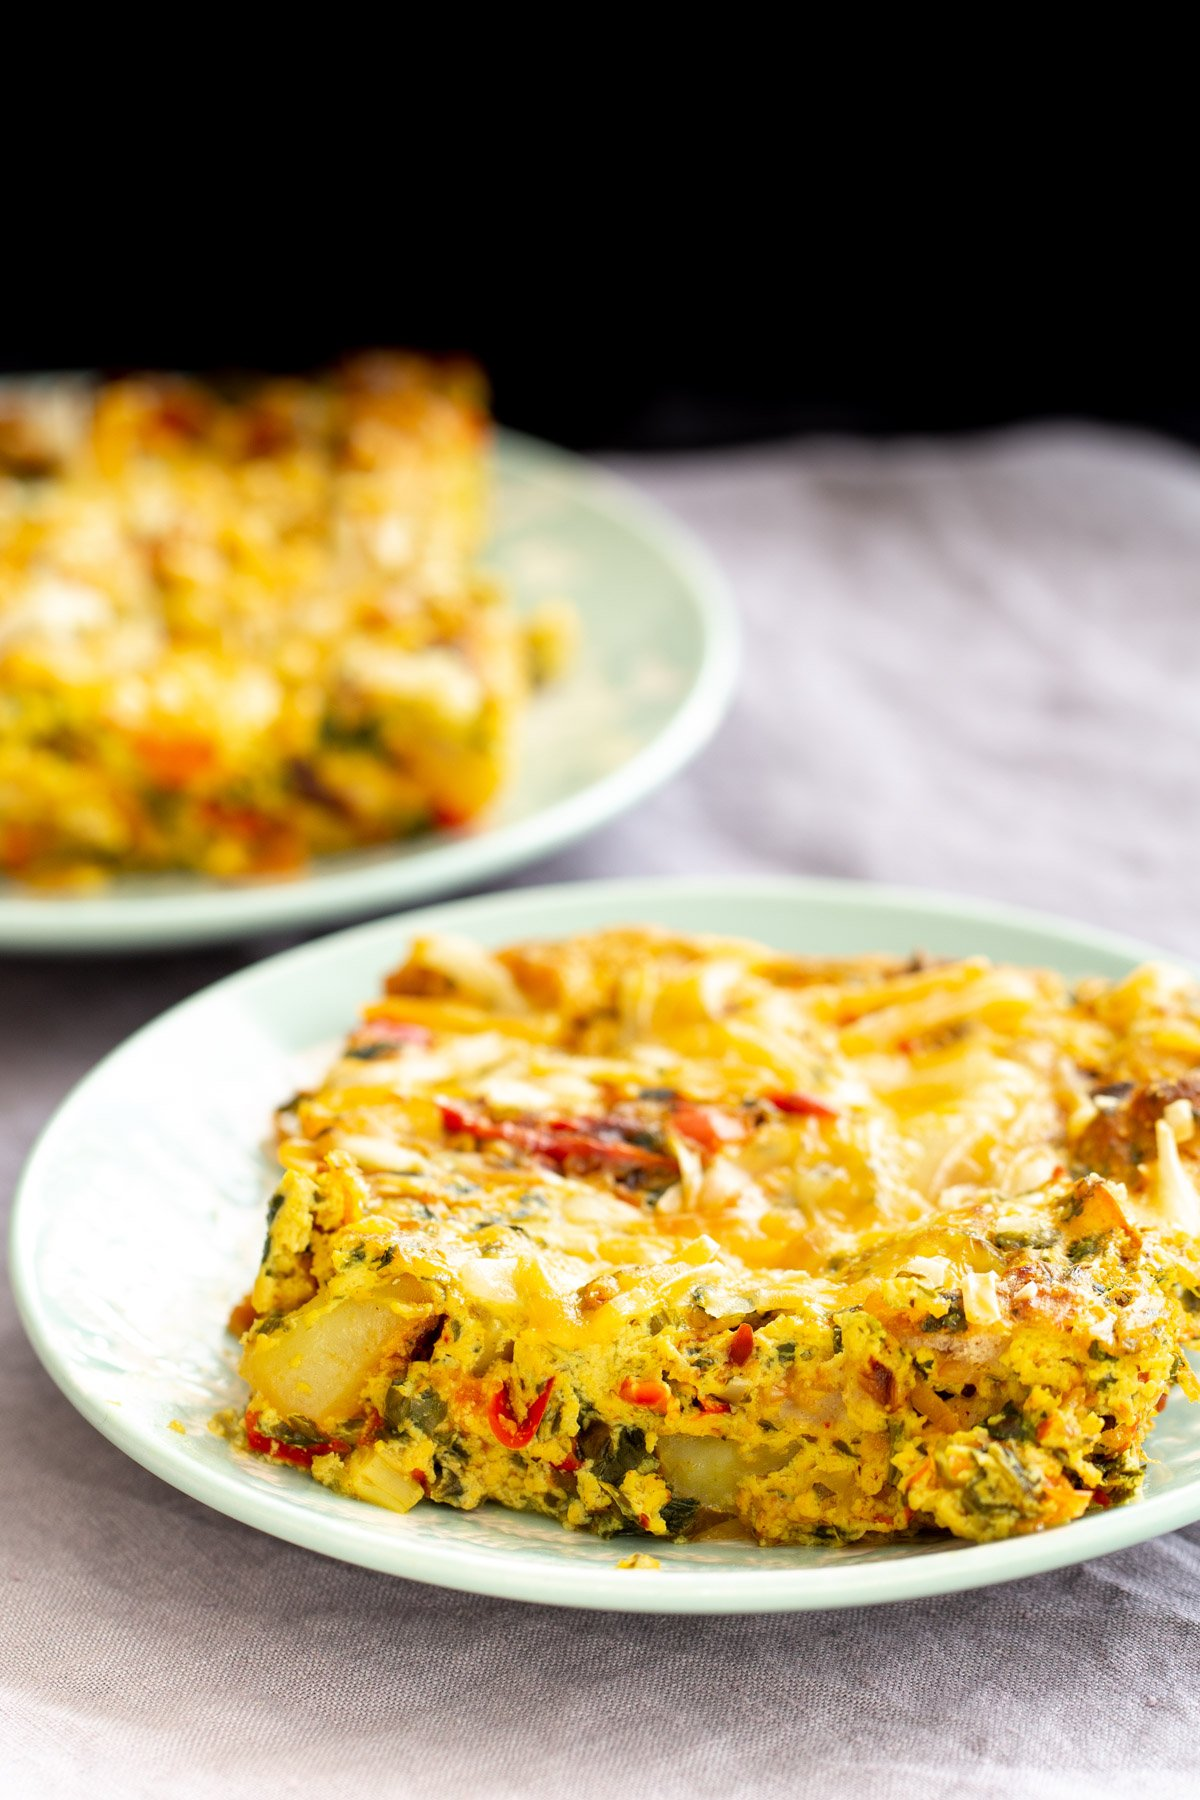 two plates with vegan Mexican egg breakfast casserole with bell pepper, potatoes and onions